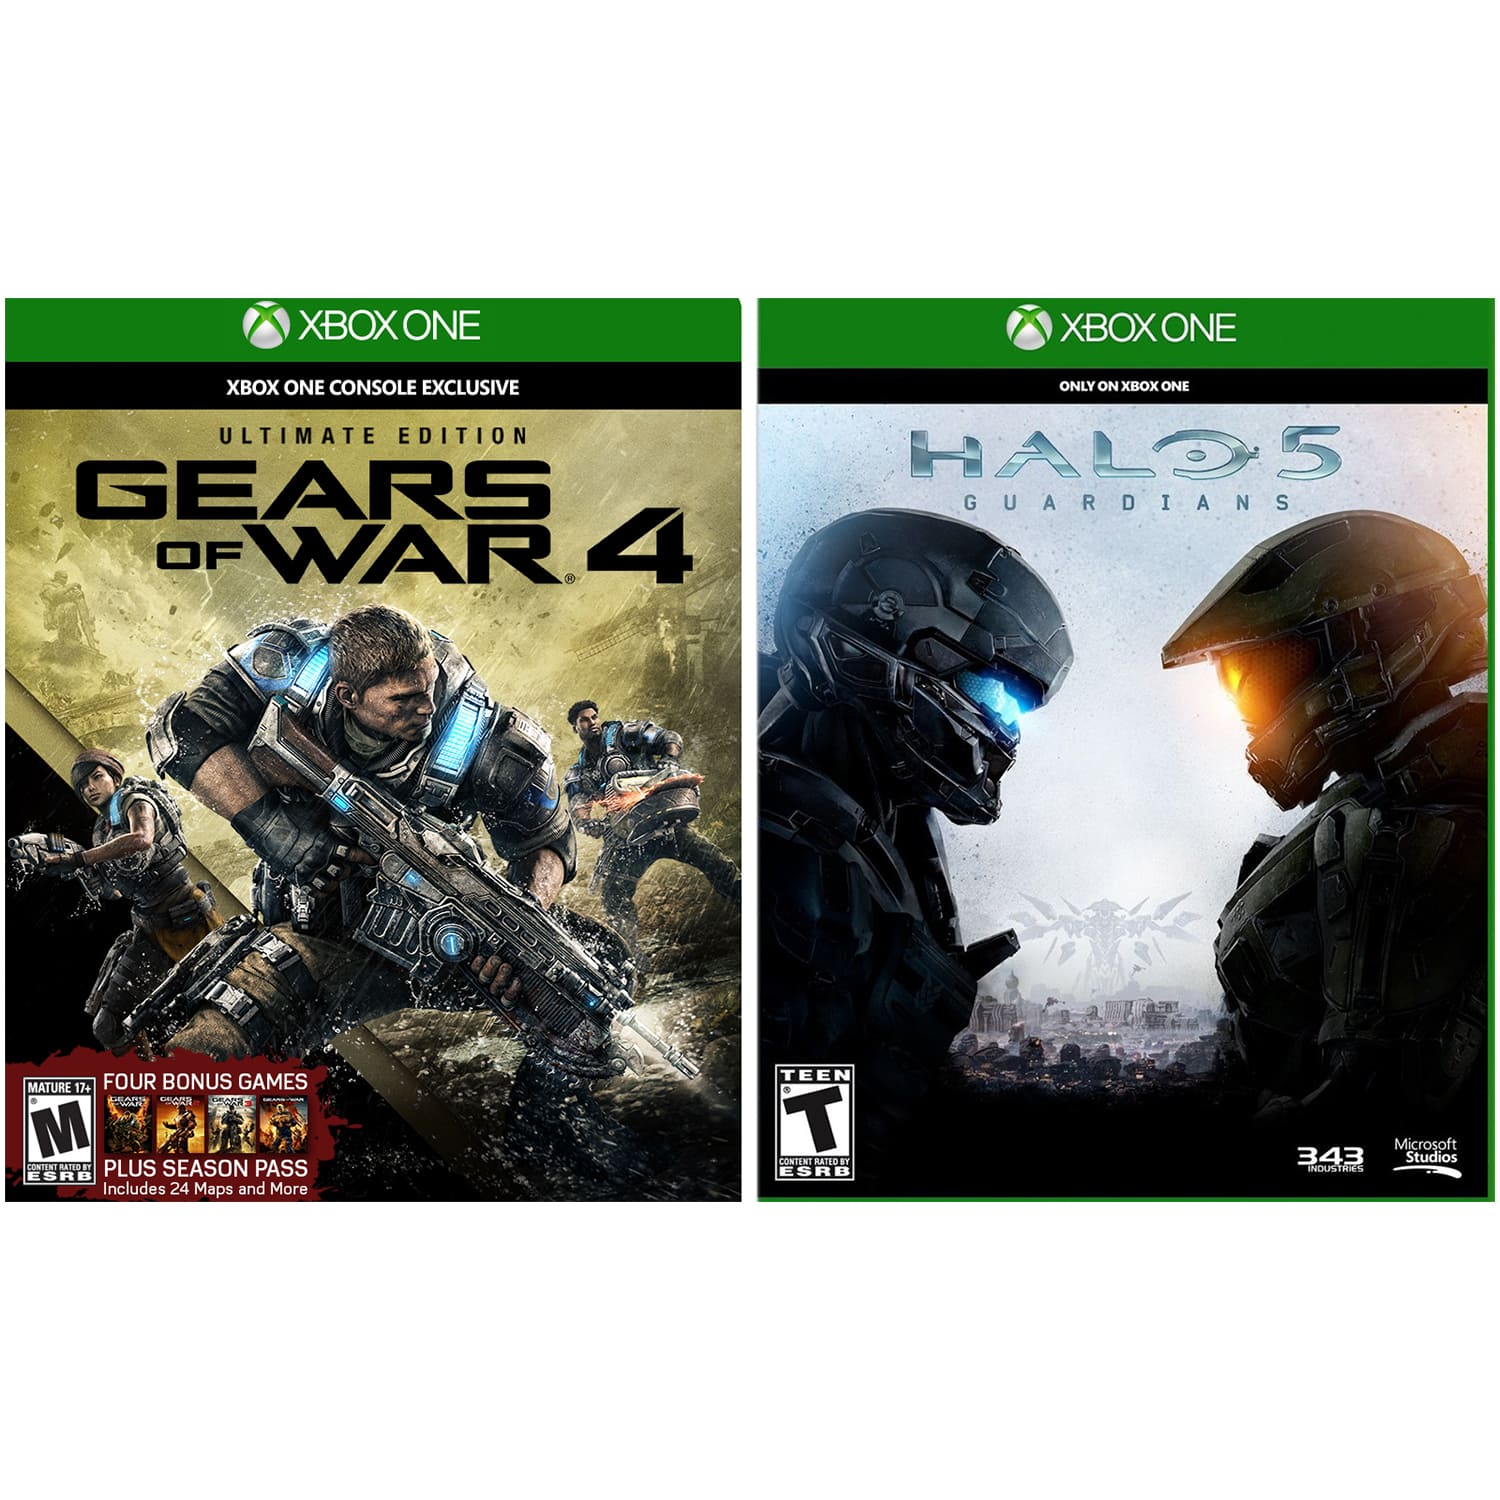 Xbox One Gears of War 4: Ultimate Edition Steelbook & Halo 5: Guardians Bundle for $32.80 + Free Shipping